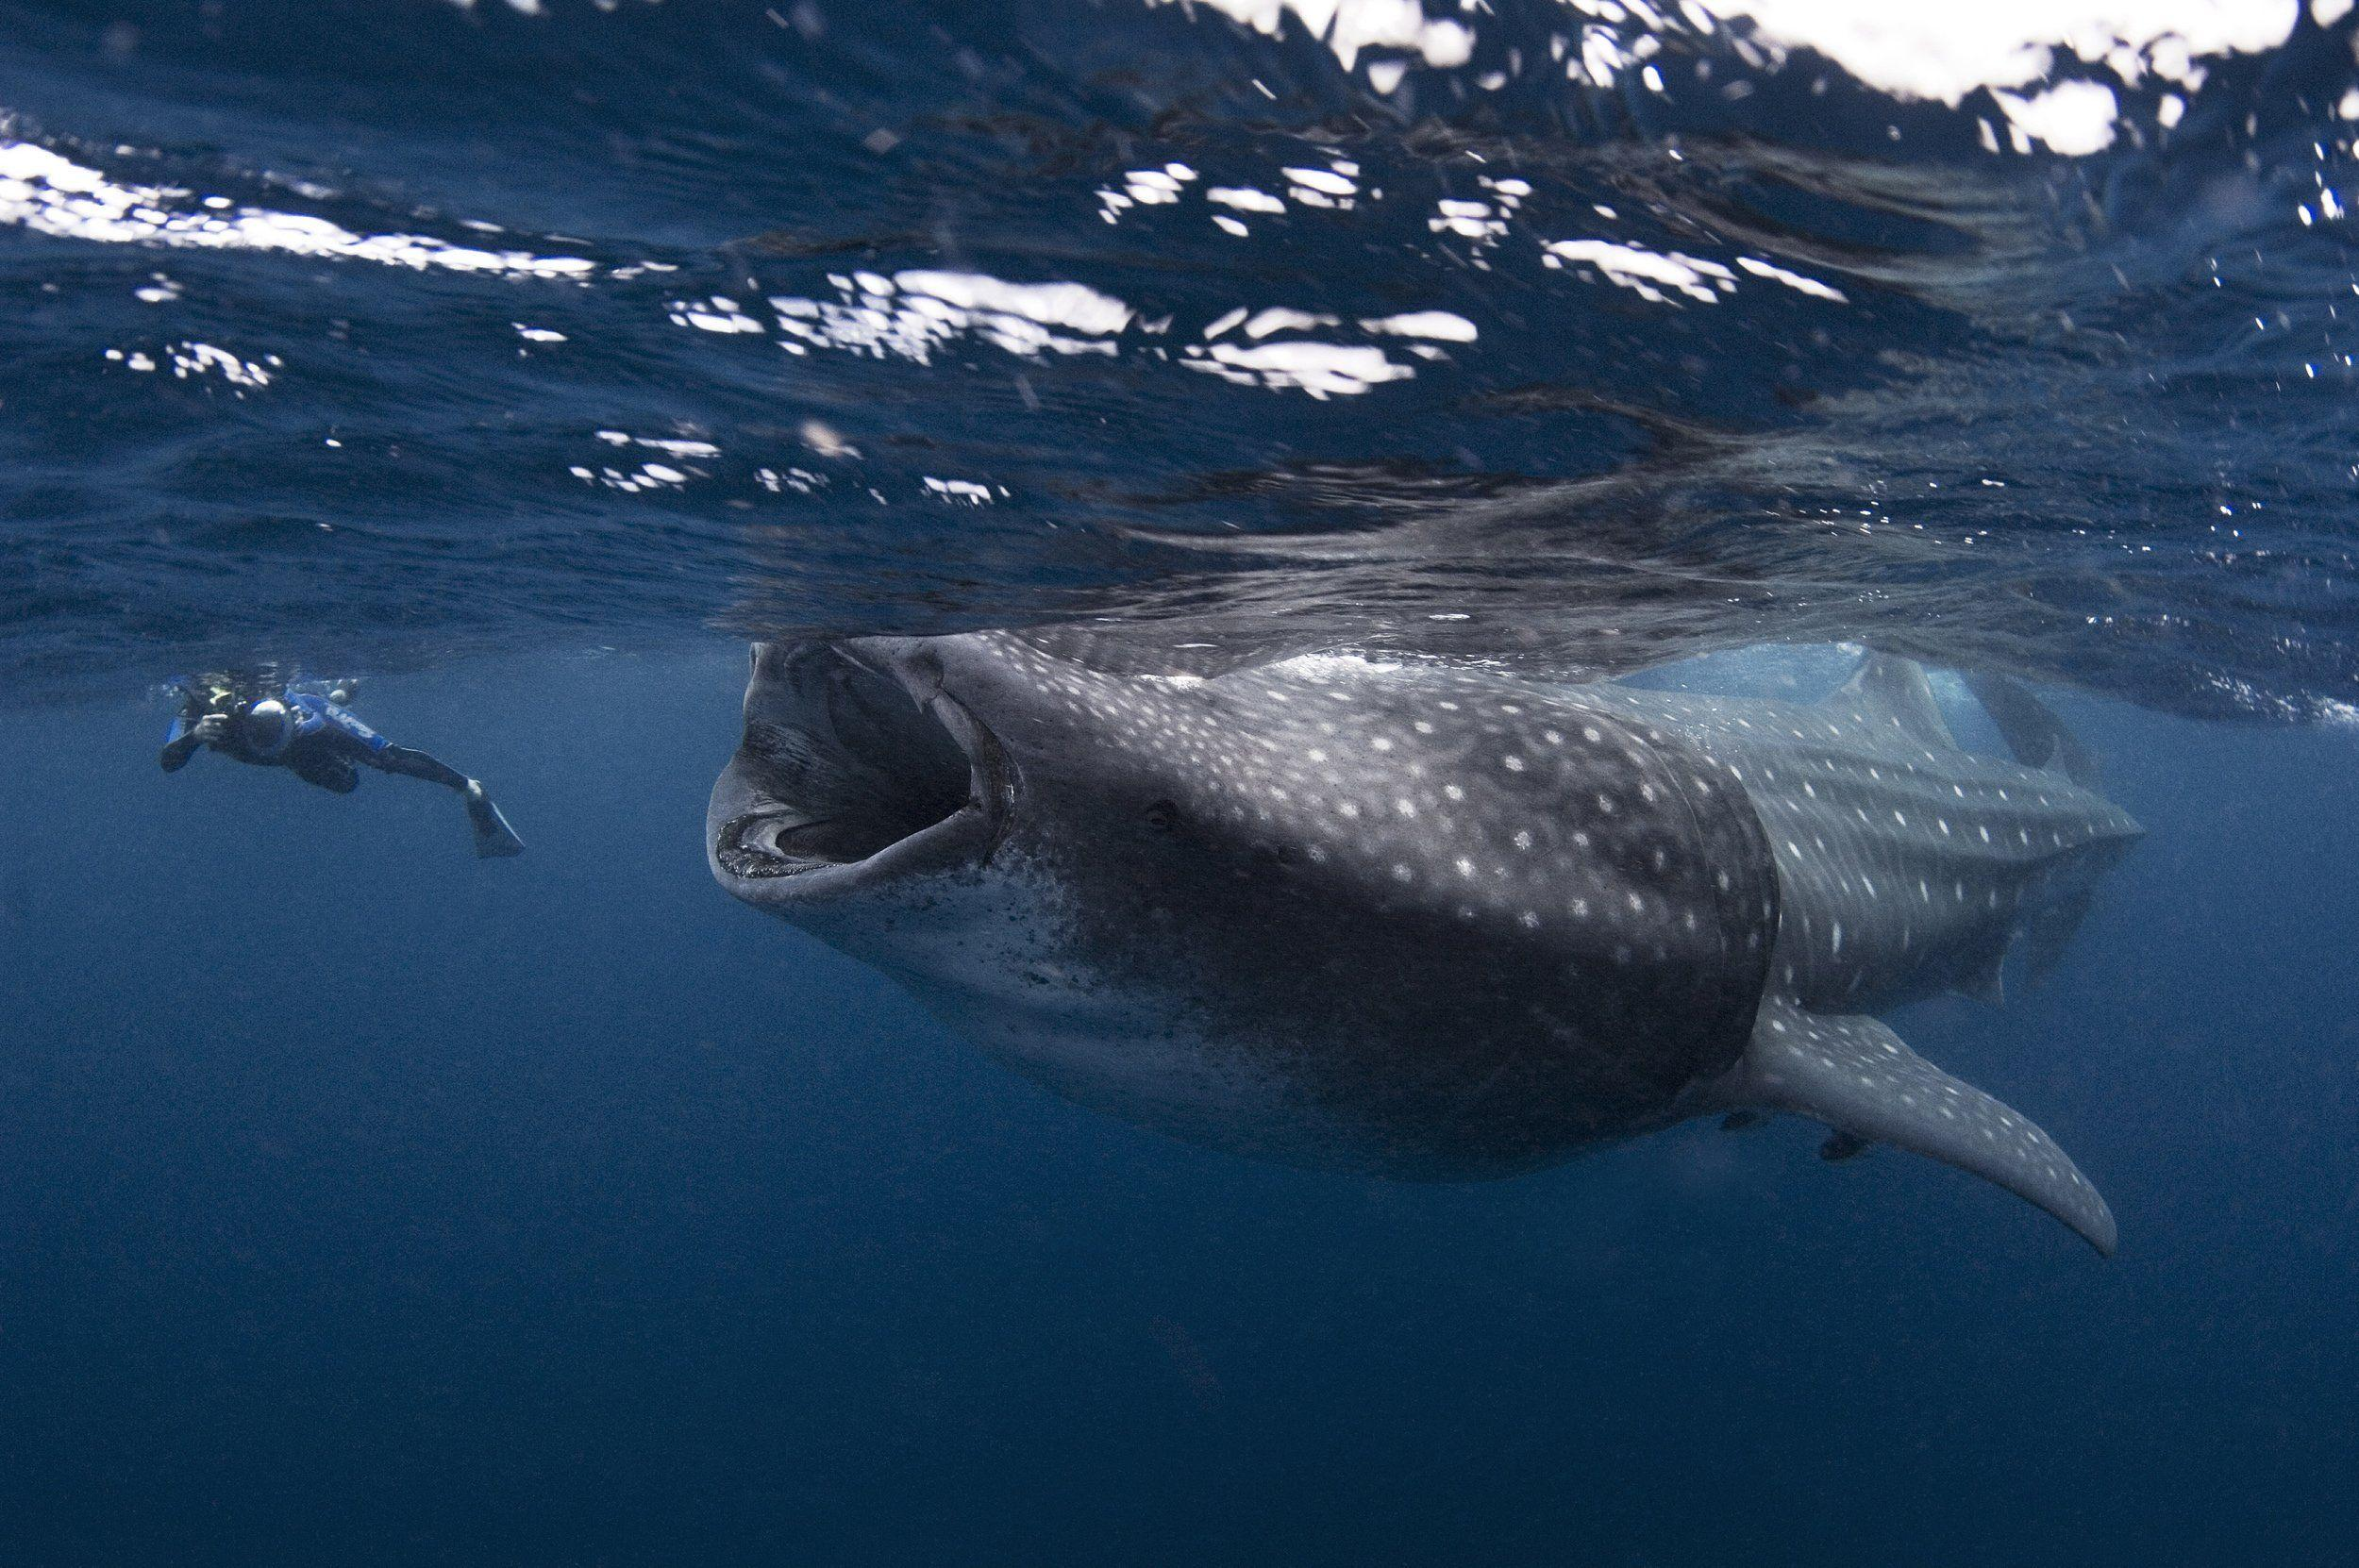 Whale shark underwater ocean sea wallpaper | 2500x1662 | 418126 ...